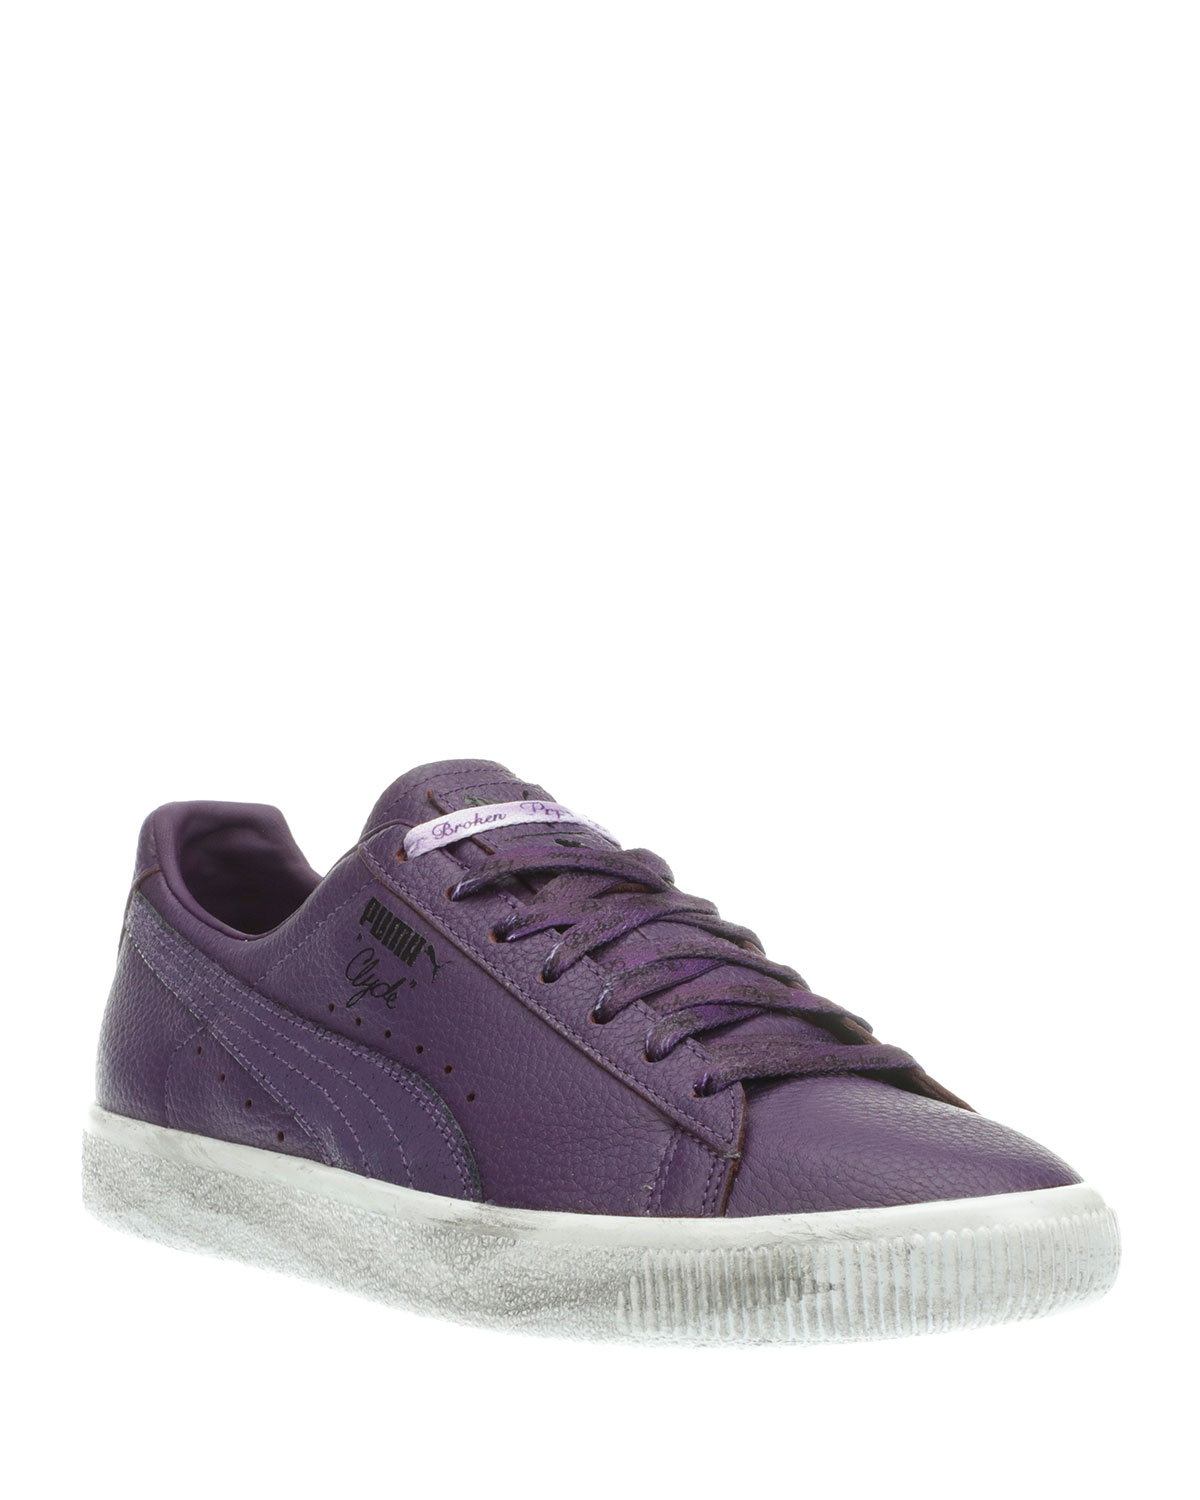 Puma Men s Puma X PRPS Clyde Leather Low-Top Platform Sneakers ... a545f01bf